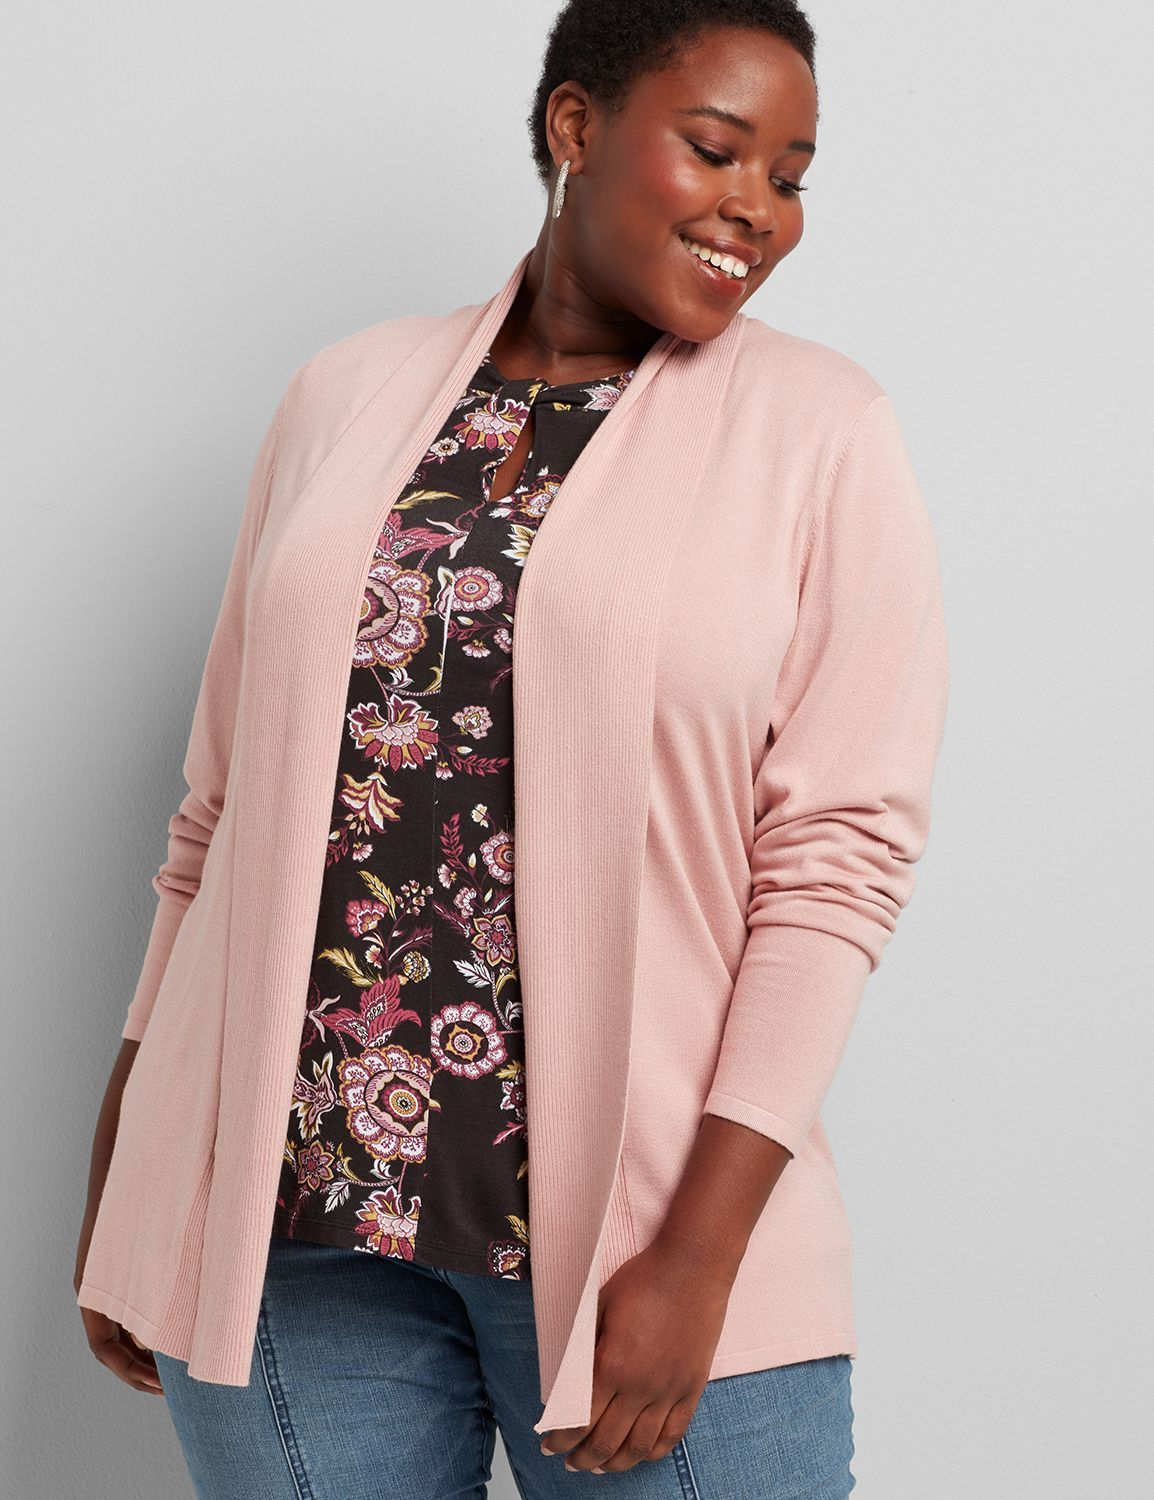 lane bryant women's shawl-collar overpiece with ribbed inset 14/16 pale mauve